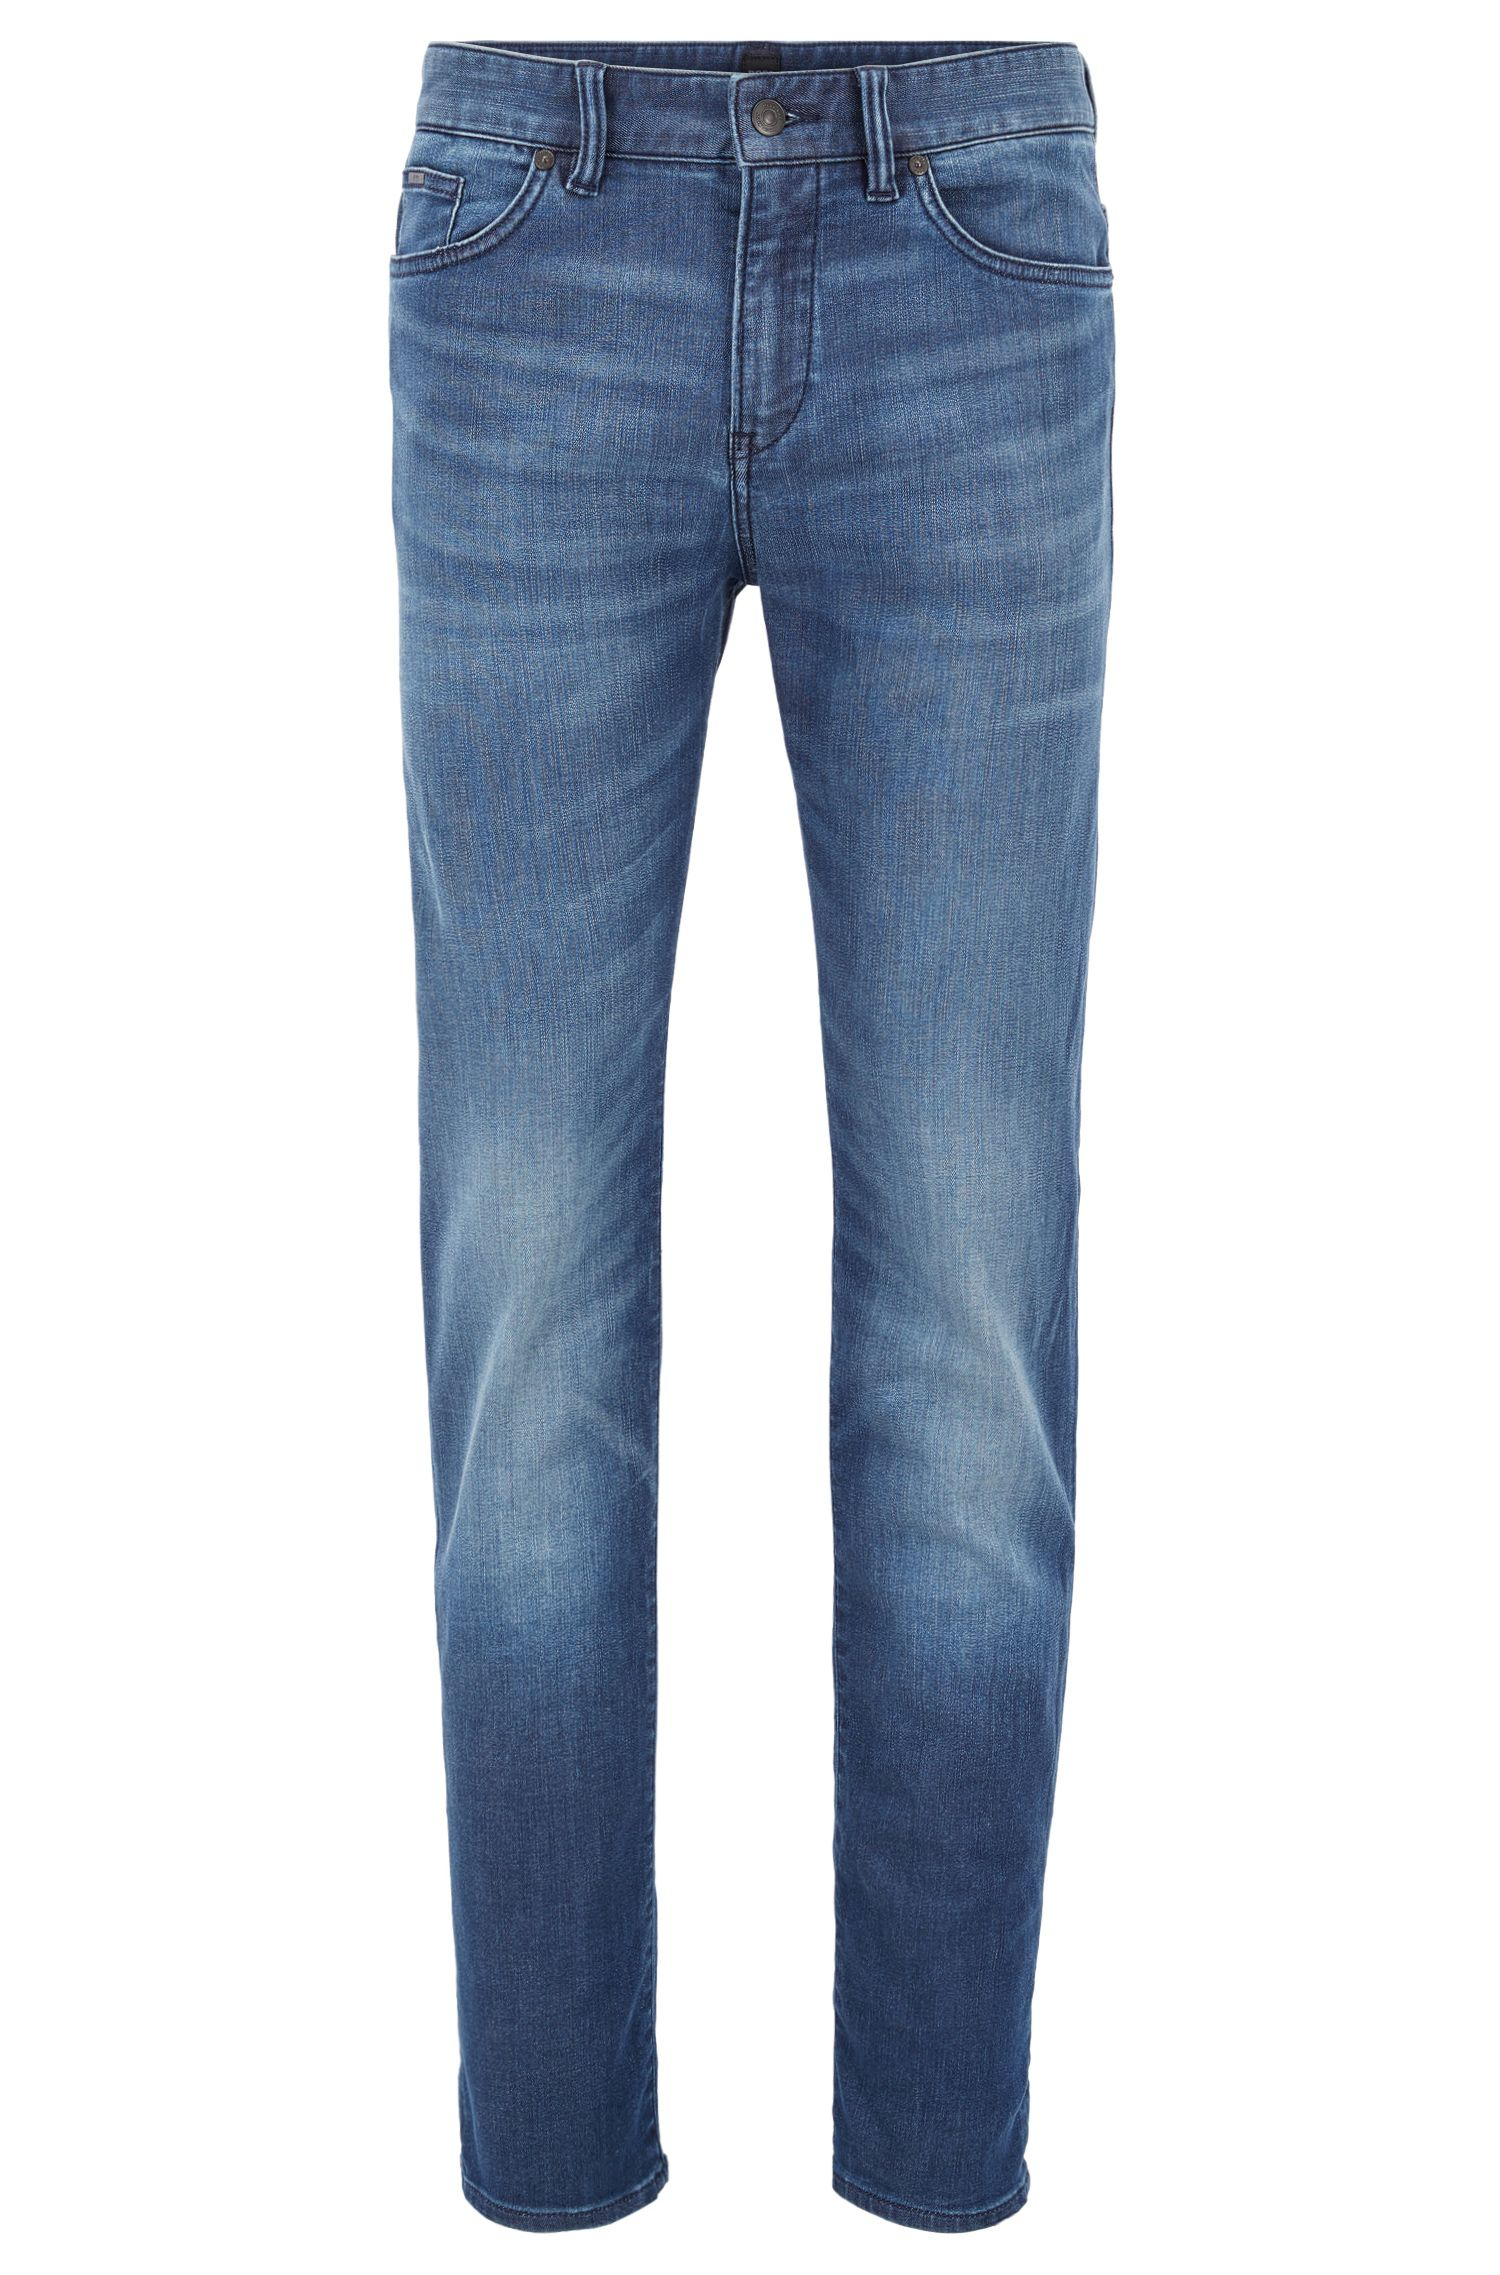 Mid-blue slim-fit jeans in stretch denim